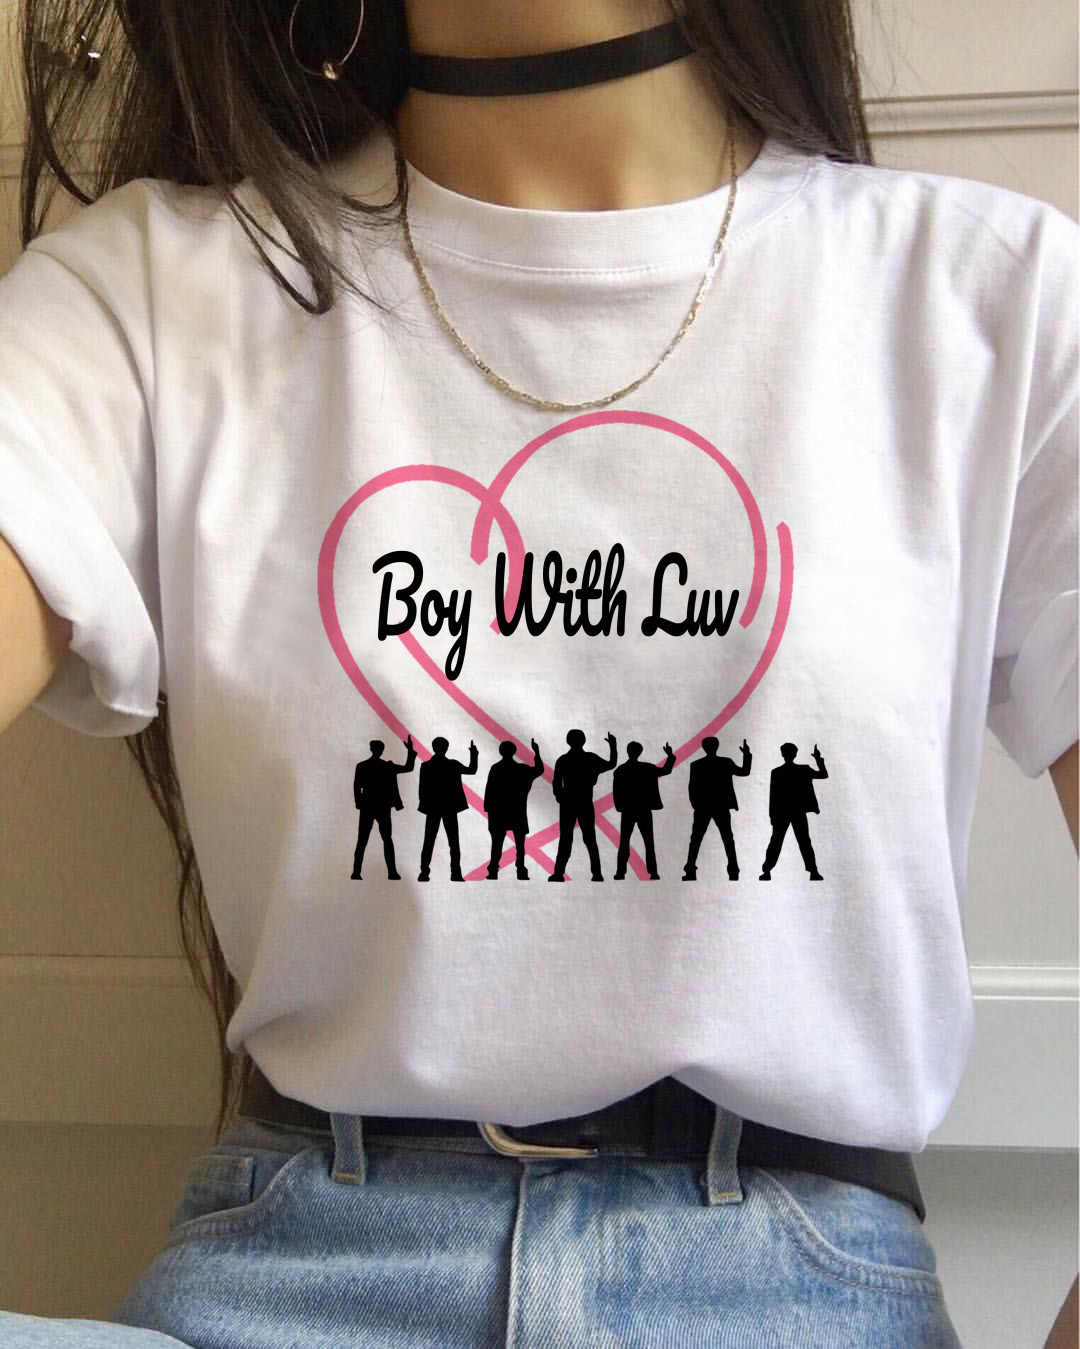 Camiseta Multiple k-pop Blackpink Ateez para mujer TXT Twice Tshirt Kpop Boy con Luv Tees femenina Nct127